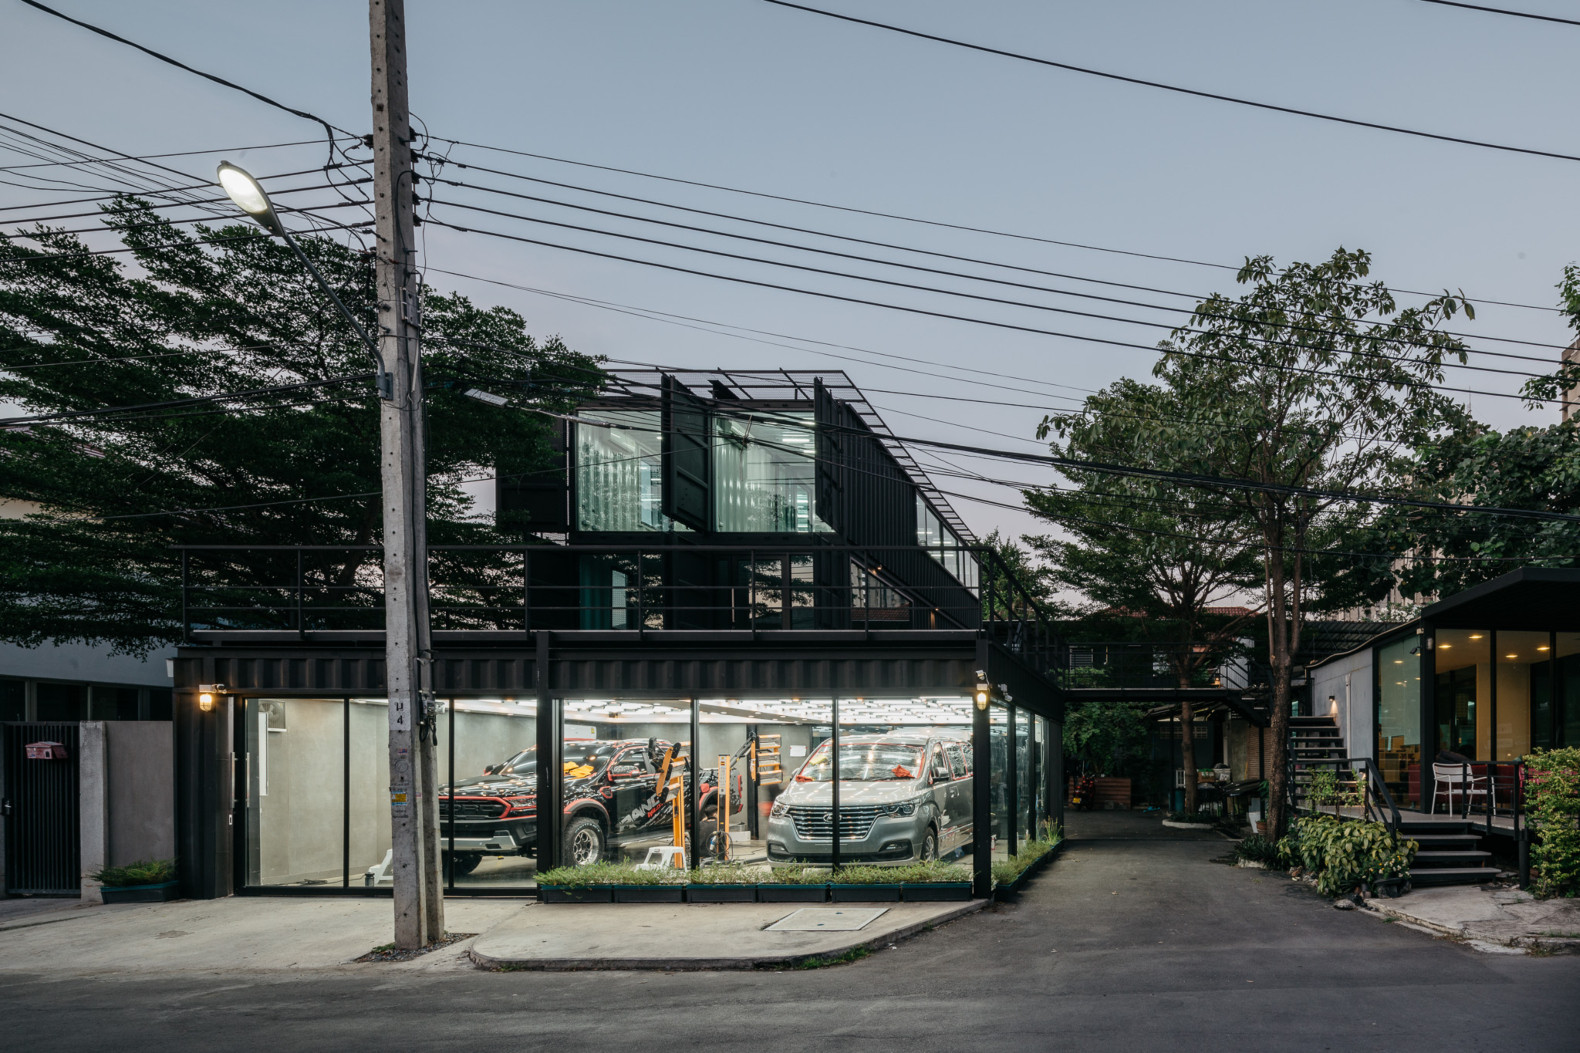 An elegant car center in Thailand is made from 8 repurposed shipping containers